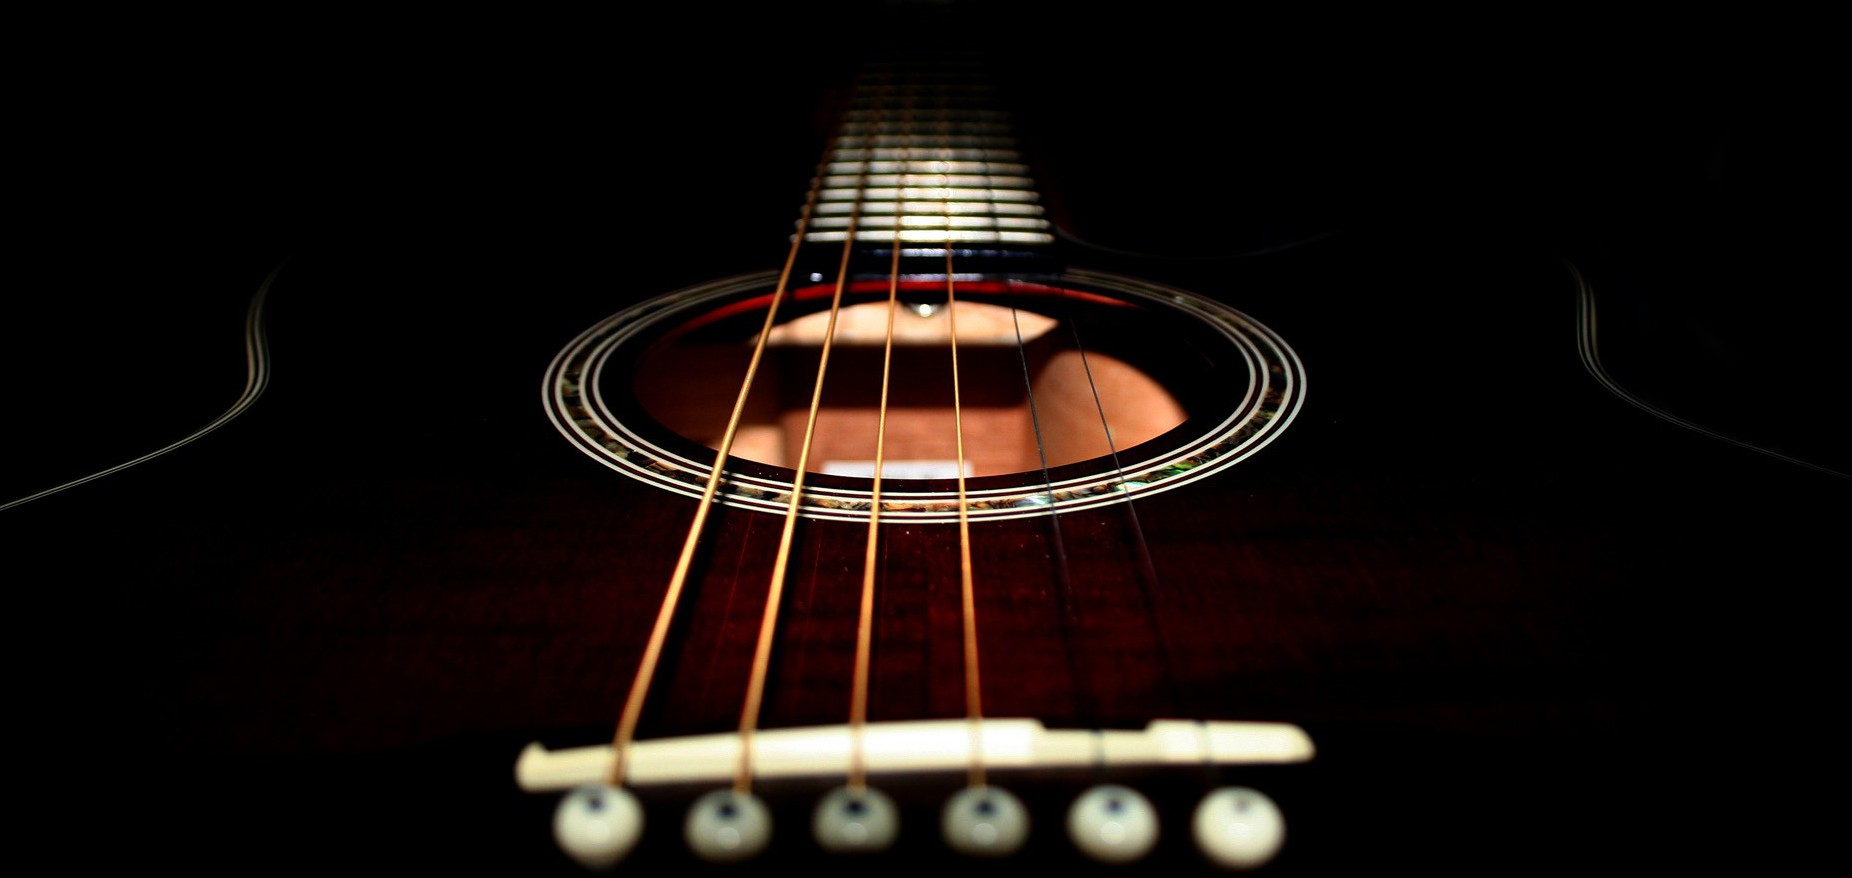 acoustic-guitar-music-art-1920x1200-wallpaper25903